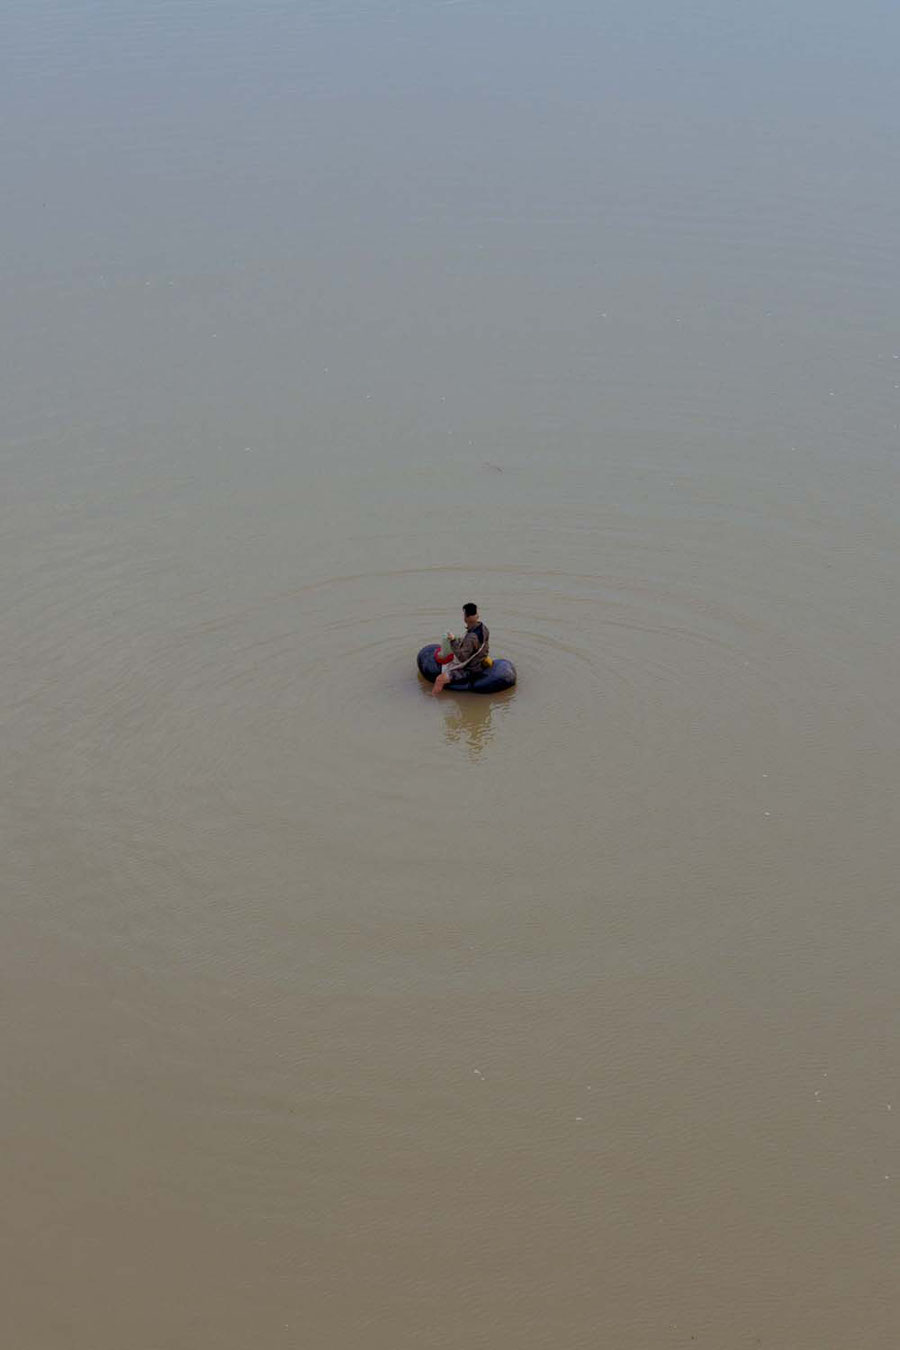 A fisher in the mekong with his tiny toy boat, Jinghong, China